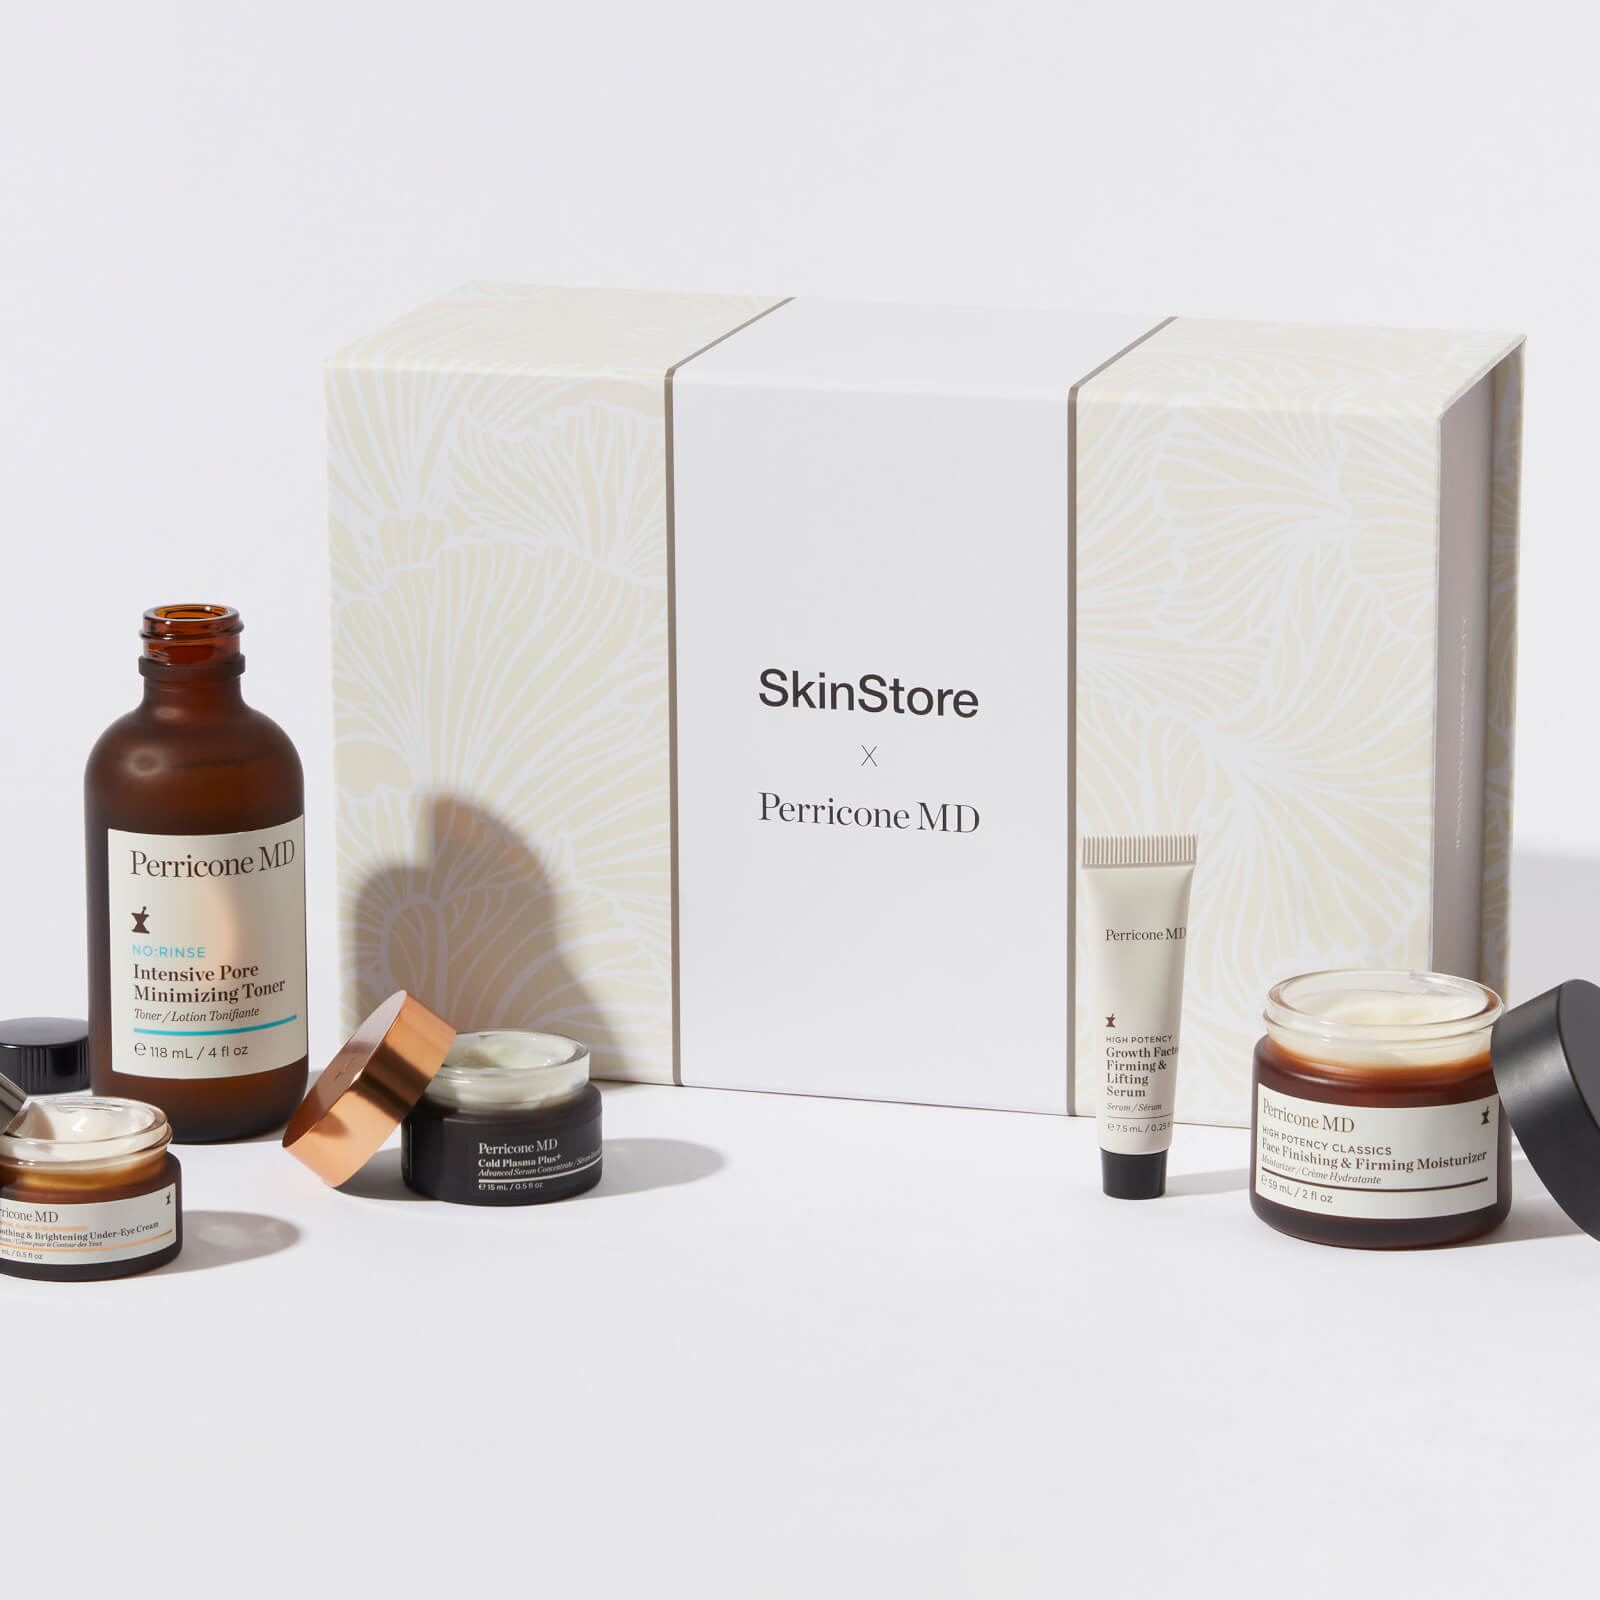 SkinStore.com: SkinStore x Perricone MD Limited Edition Box for $120 (Worth $328)